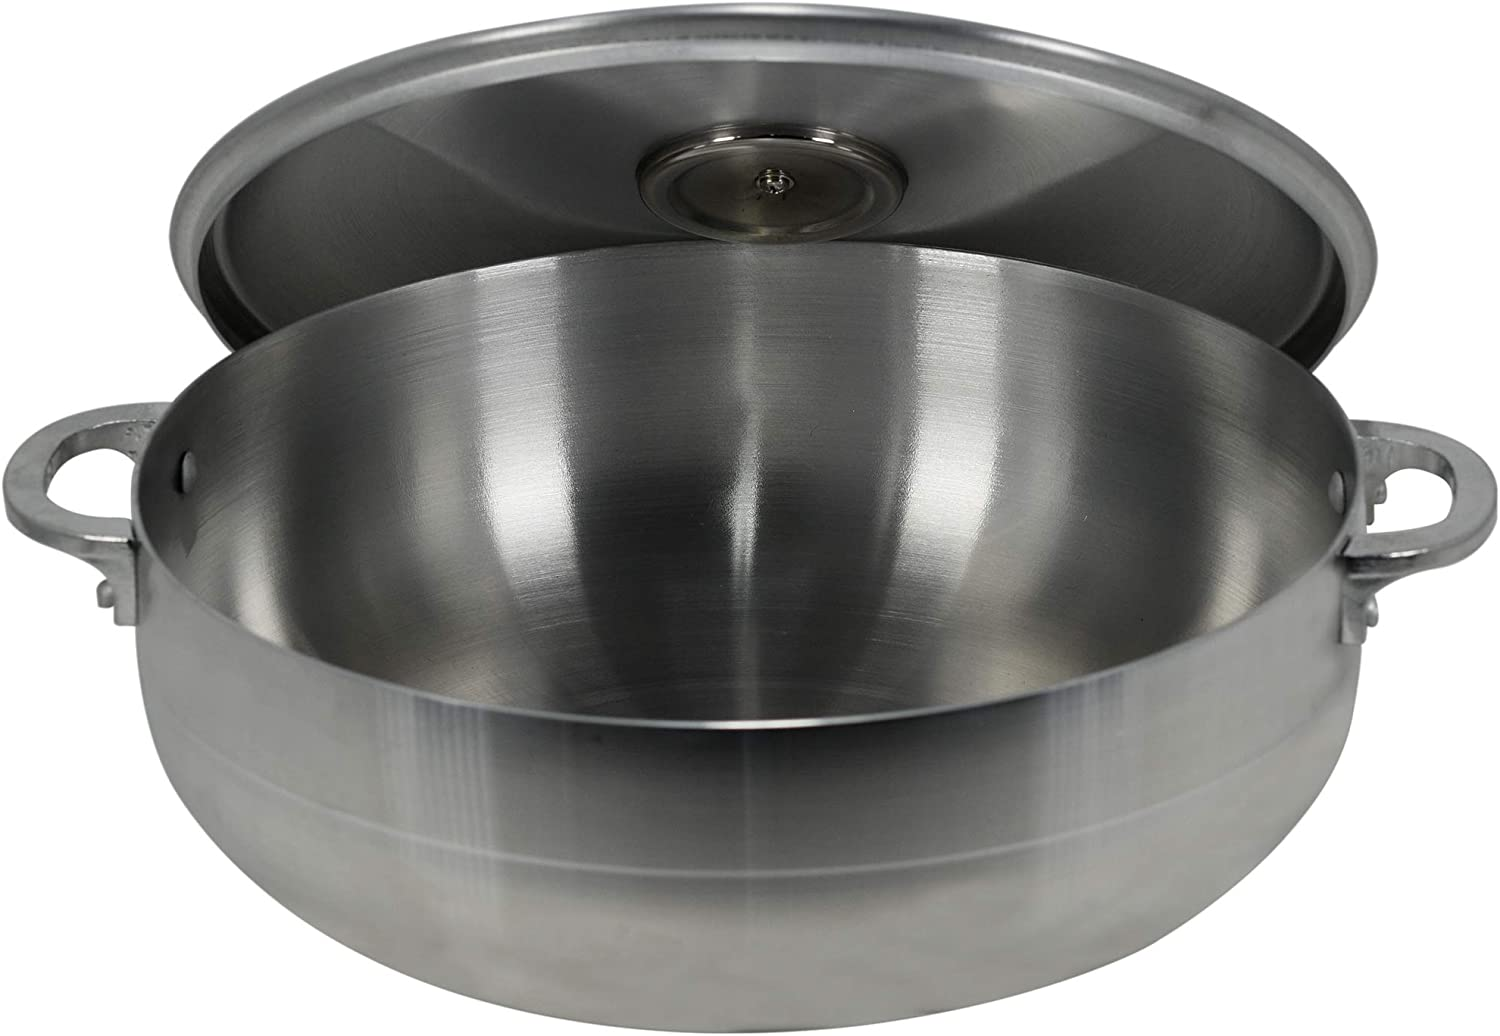 Polished Cast Aluminum Caldero with Lid by Elevate Home Products Traditional Columbian Stainless Steel Stock Pot Dishwasher Safe Silver Dutch Ovens for Cooking and Serving (4.75 Quarts)